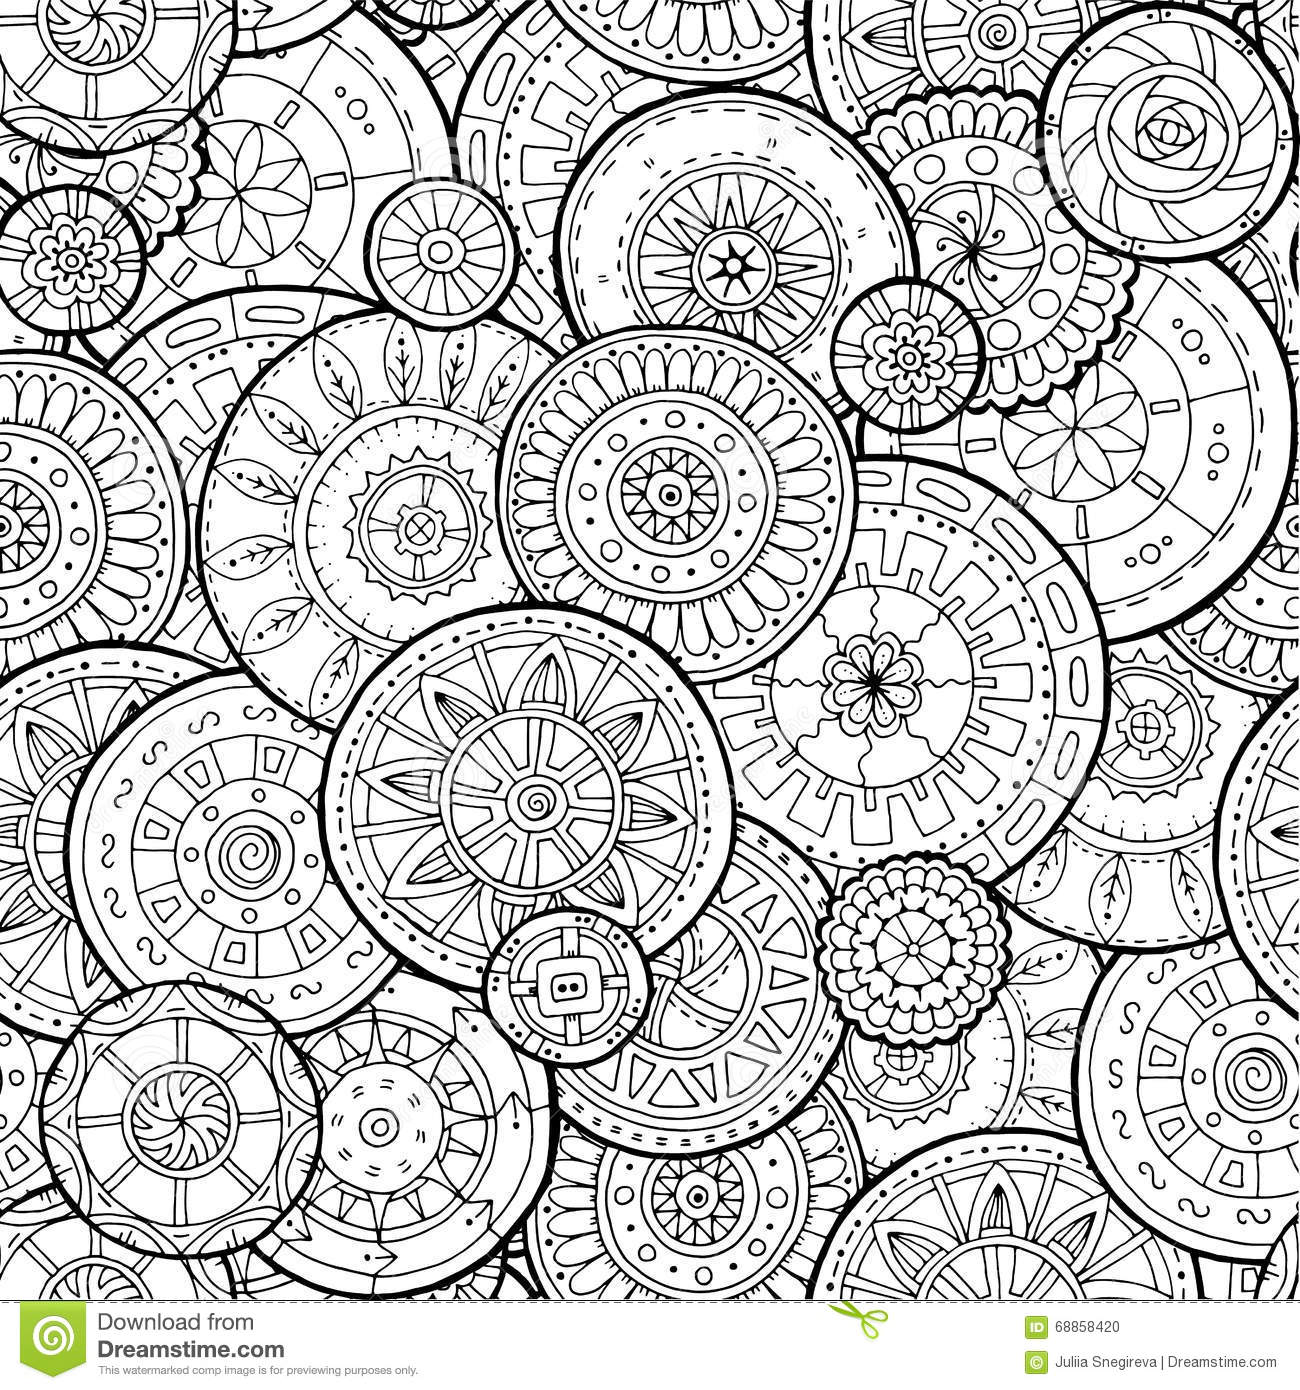 Ethnic Floral Mandalas Doodle Background Circles In